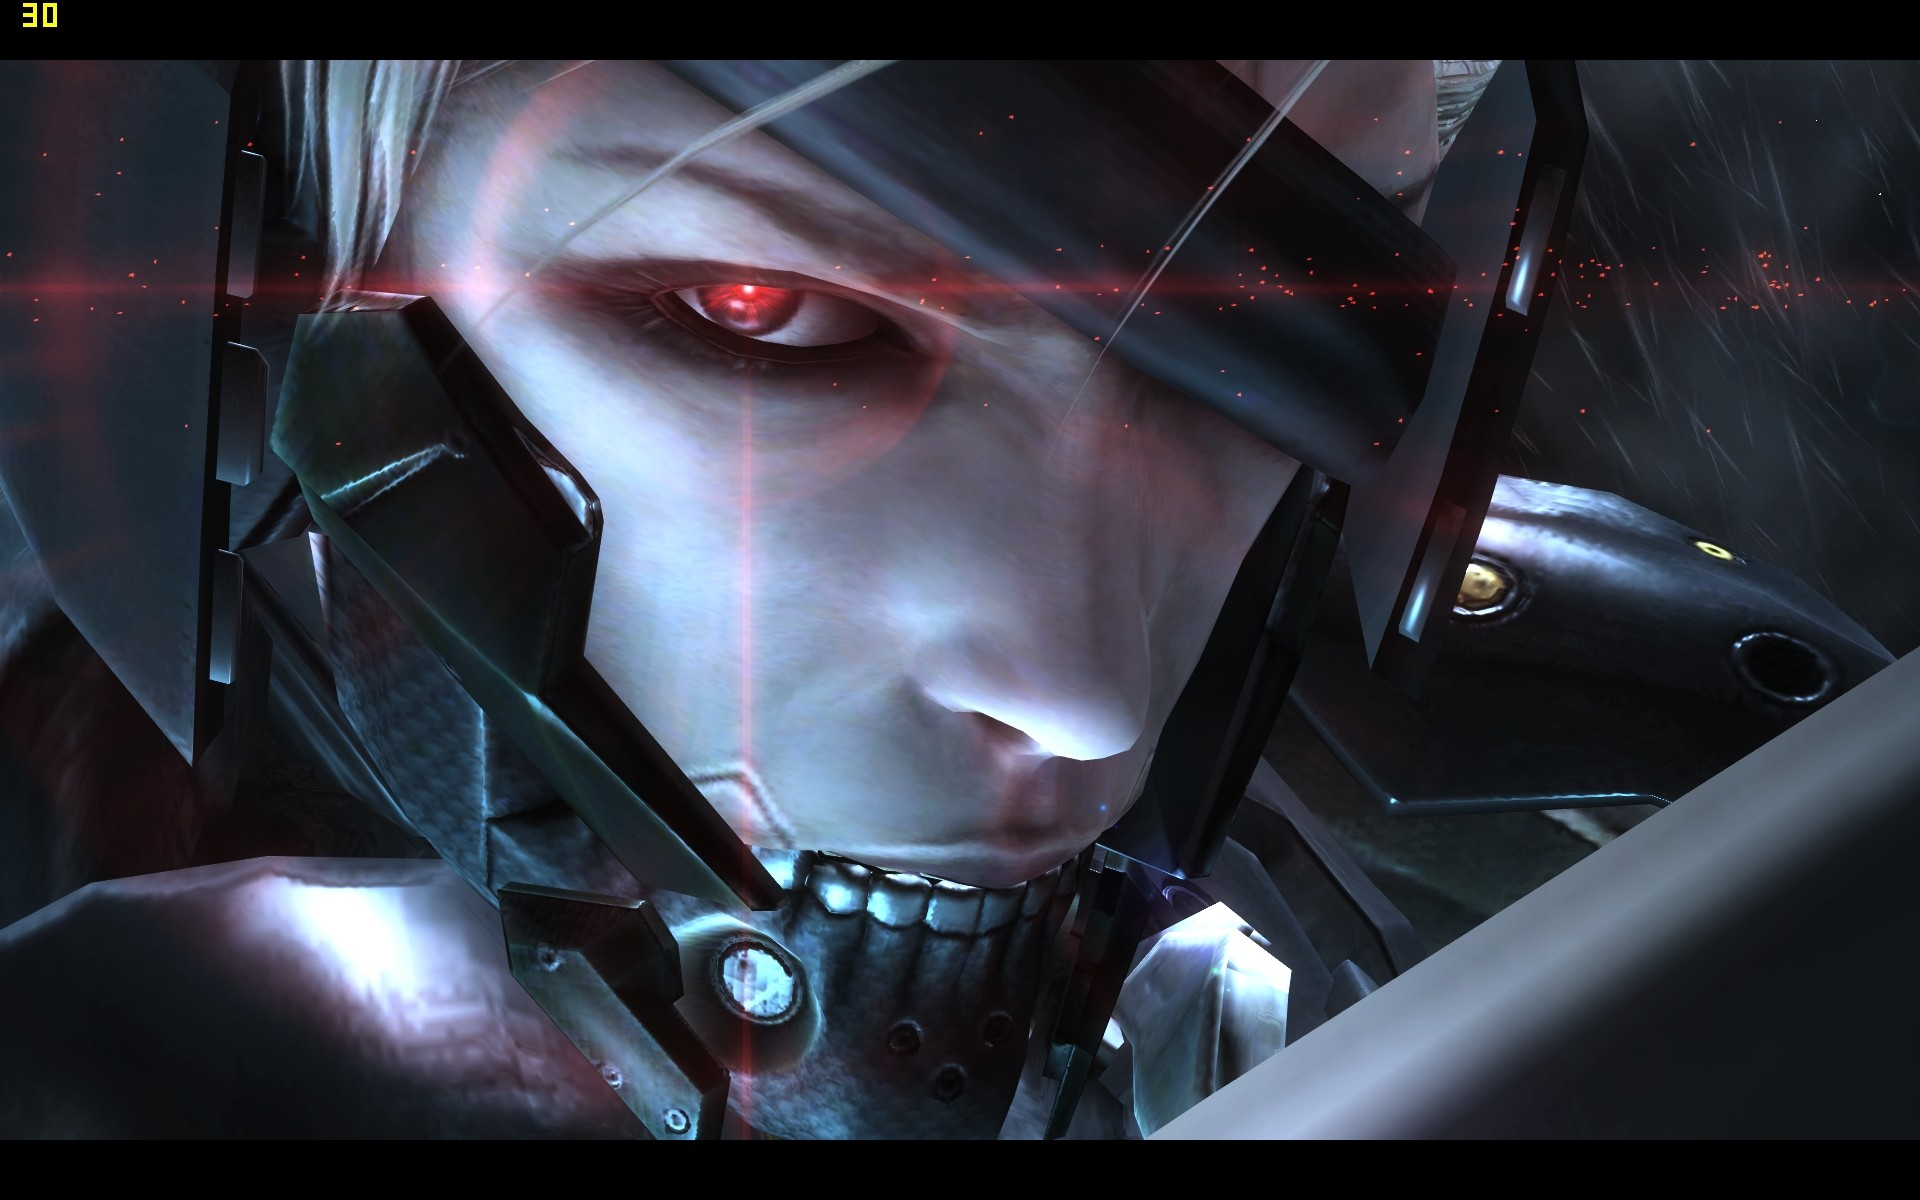 Raiden metal gear wallpaper 78 images 1920x1080 metal gear rising raiden wallpaper 2998 voltagebd Image collections